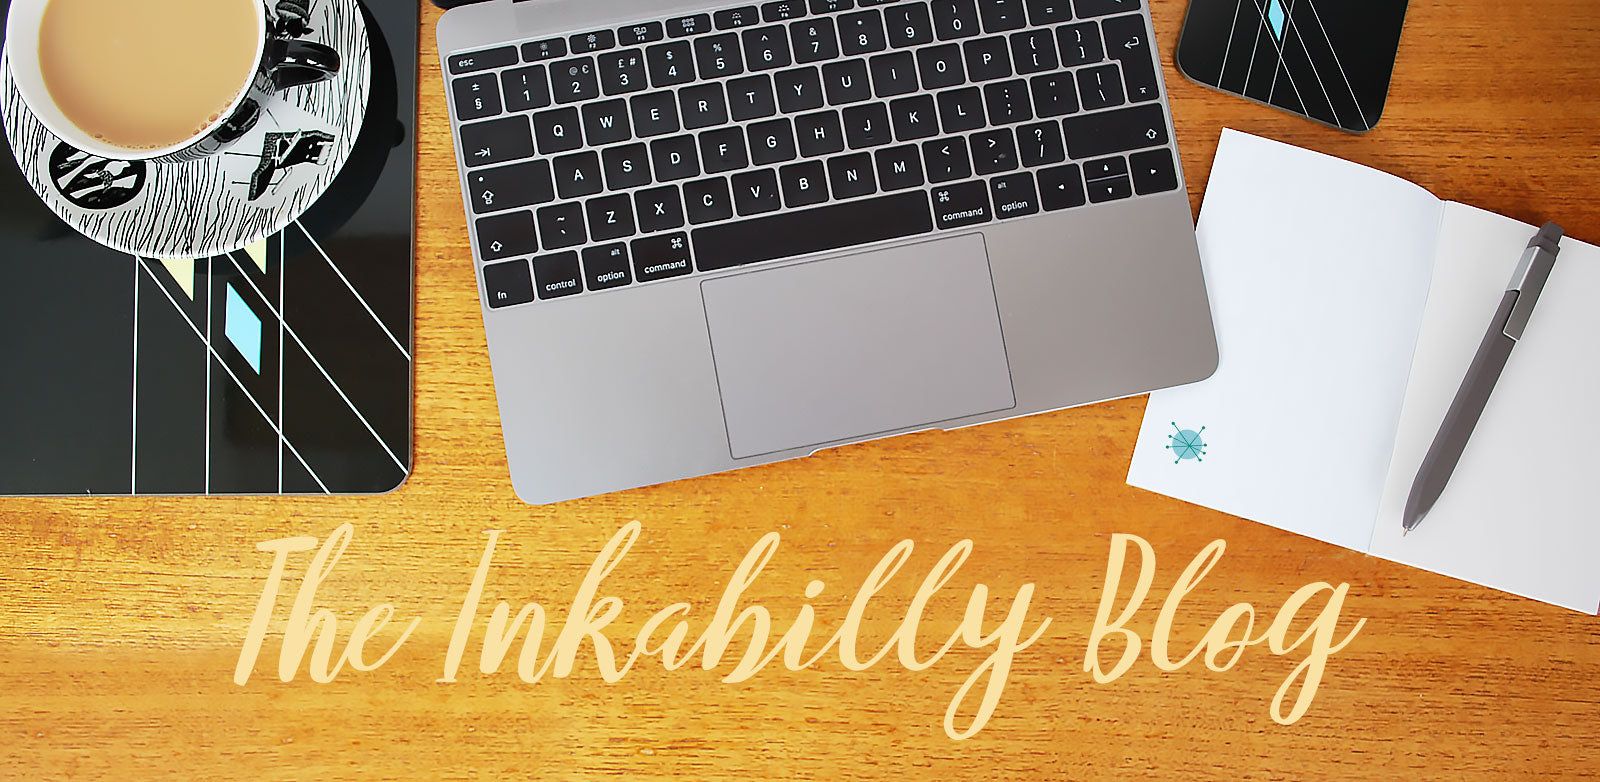 The Inkabilly Blog. Laptop, notebook & pen, vintage tea cup, retro placemat and coaster